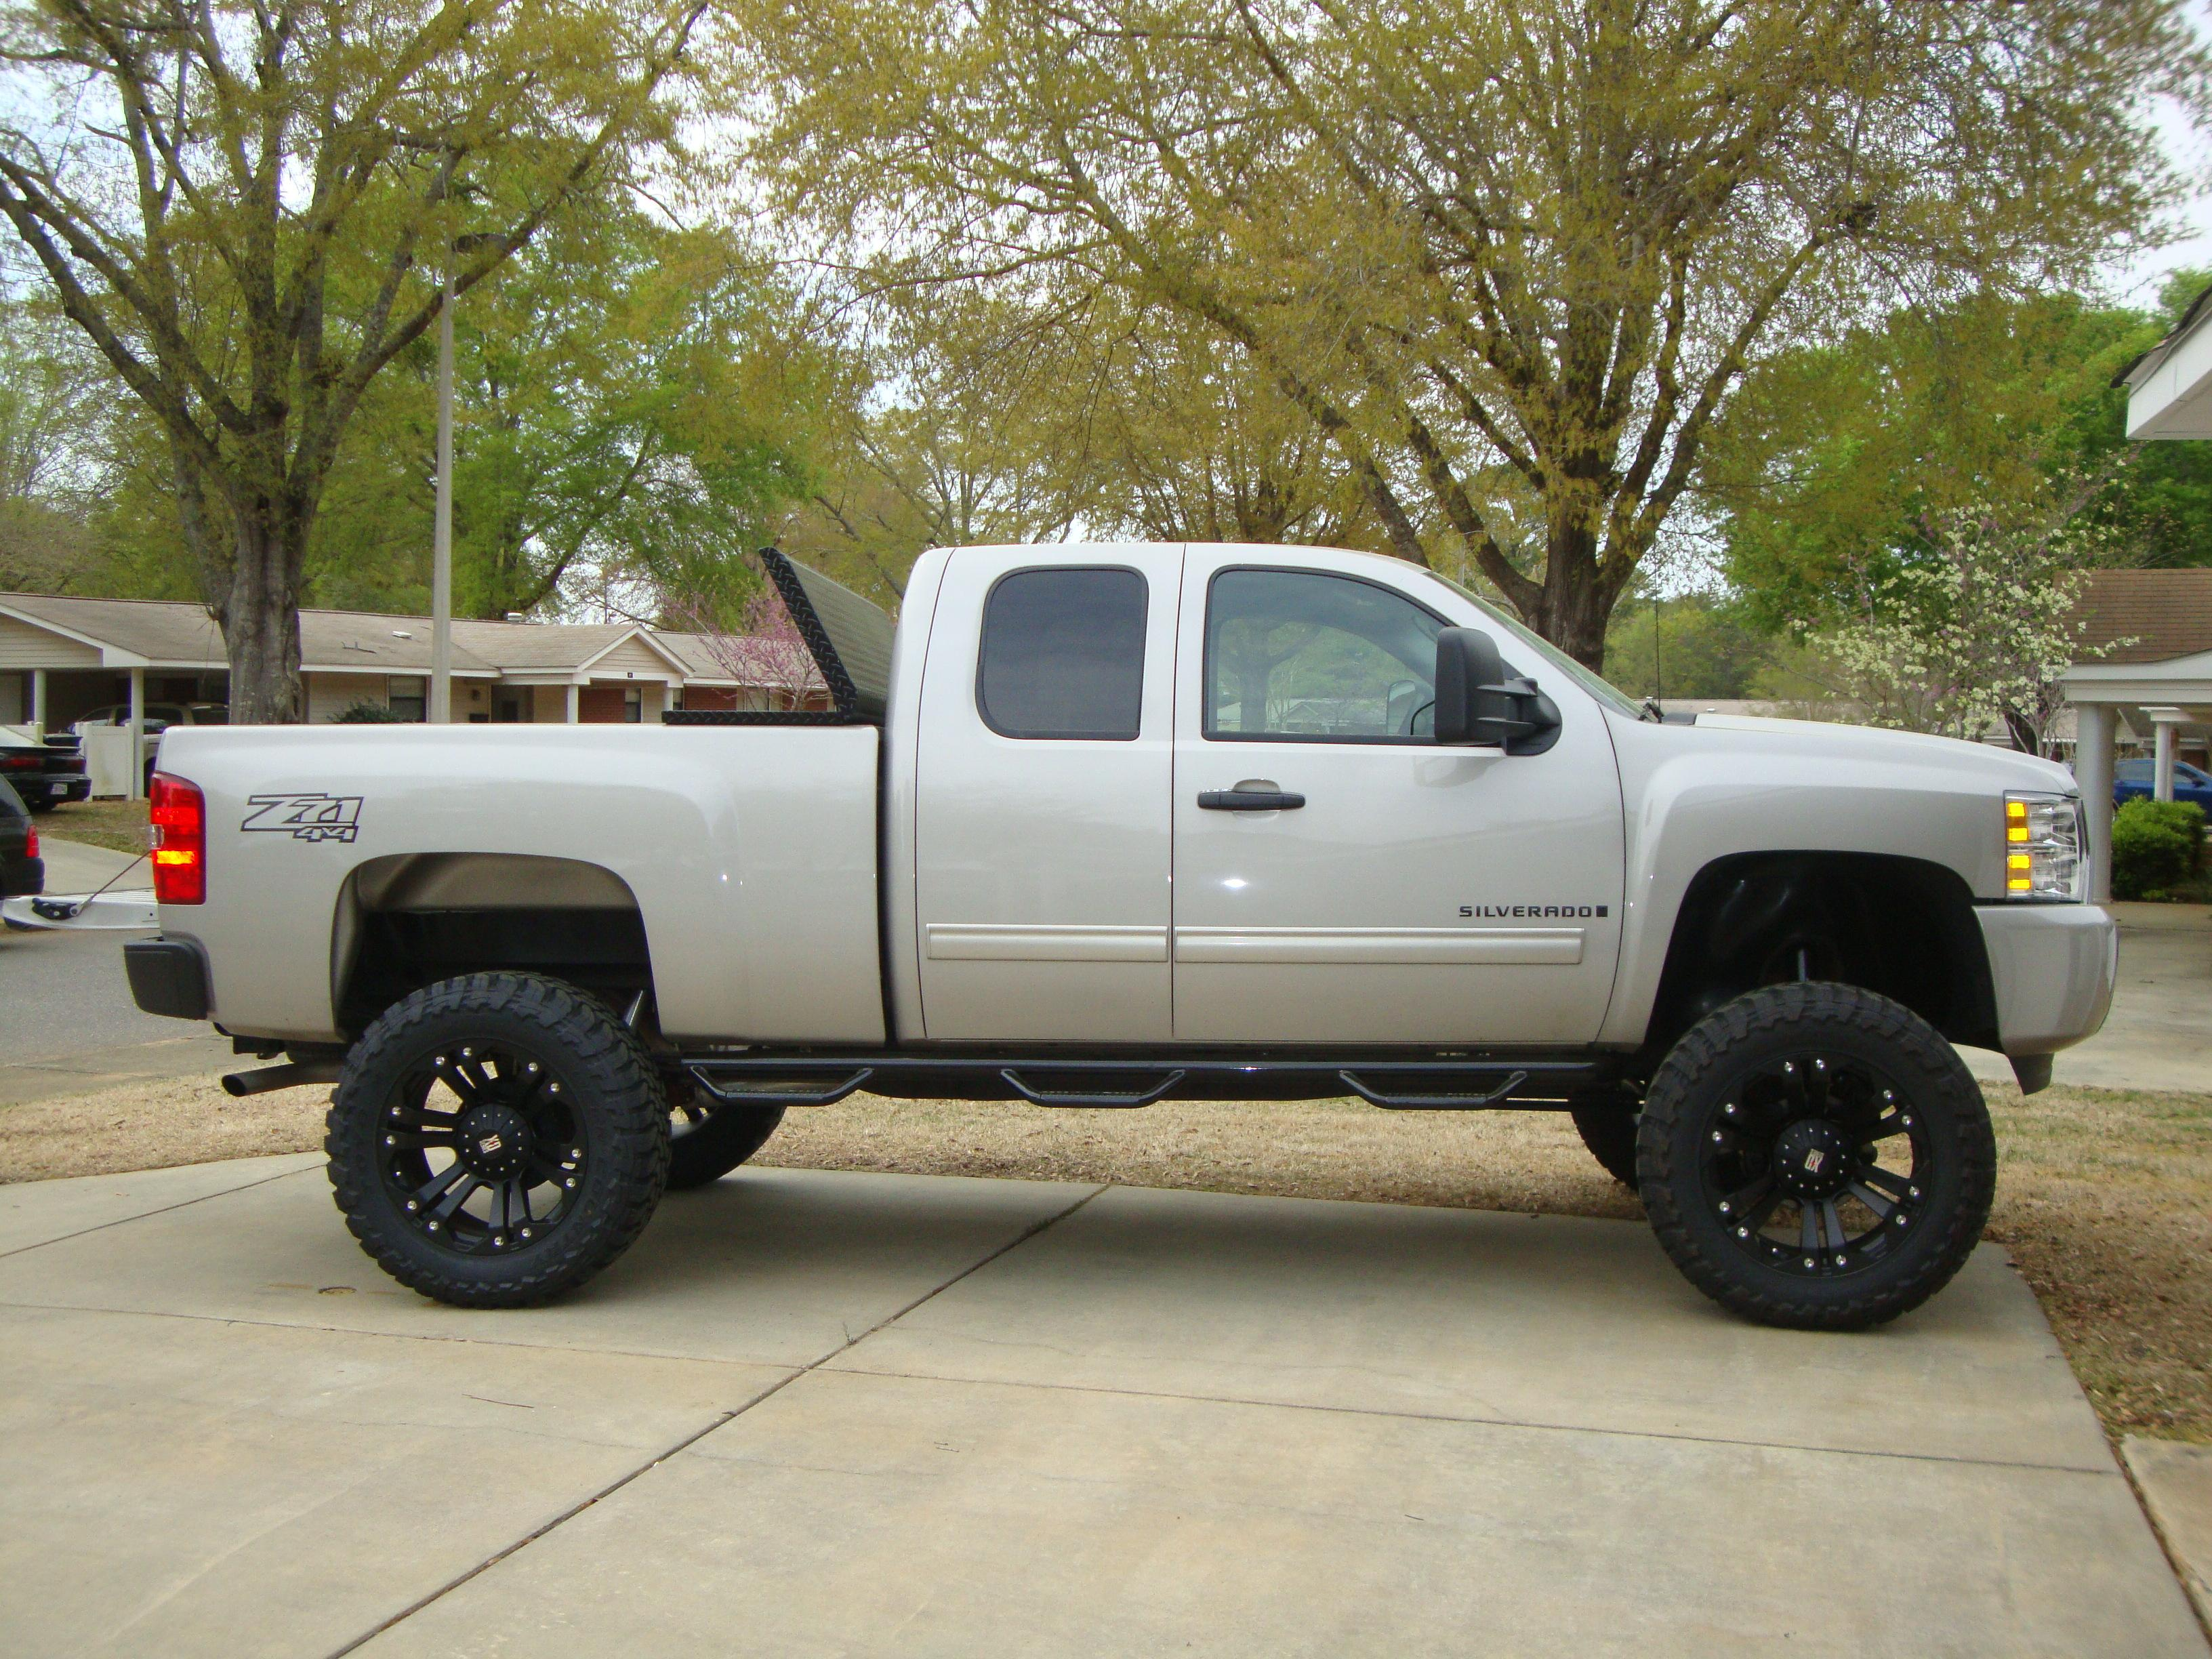 Morphix13 2009 Chevrolet Silverado 1500 Regular Cab Specs Photos